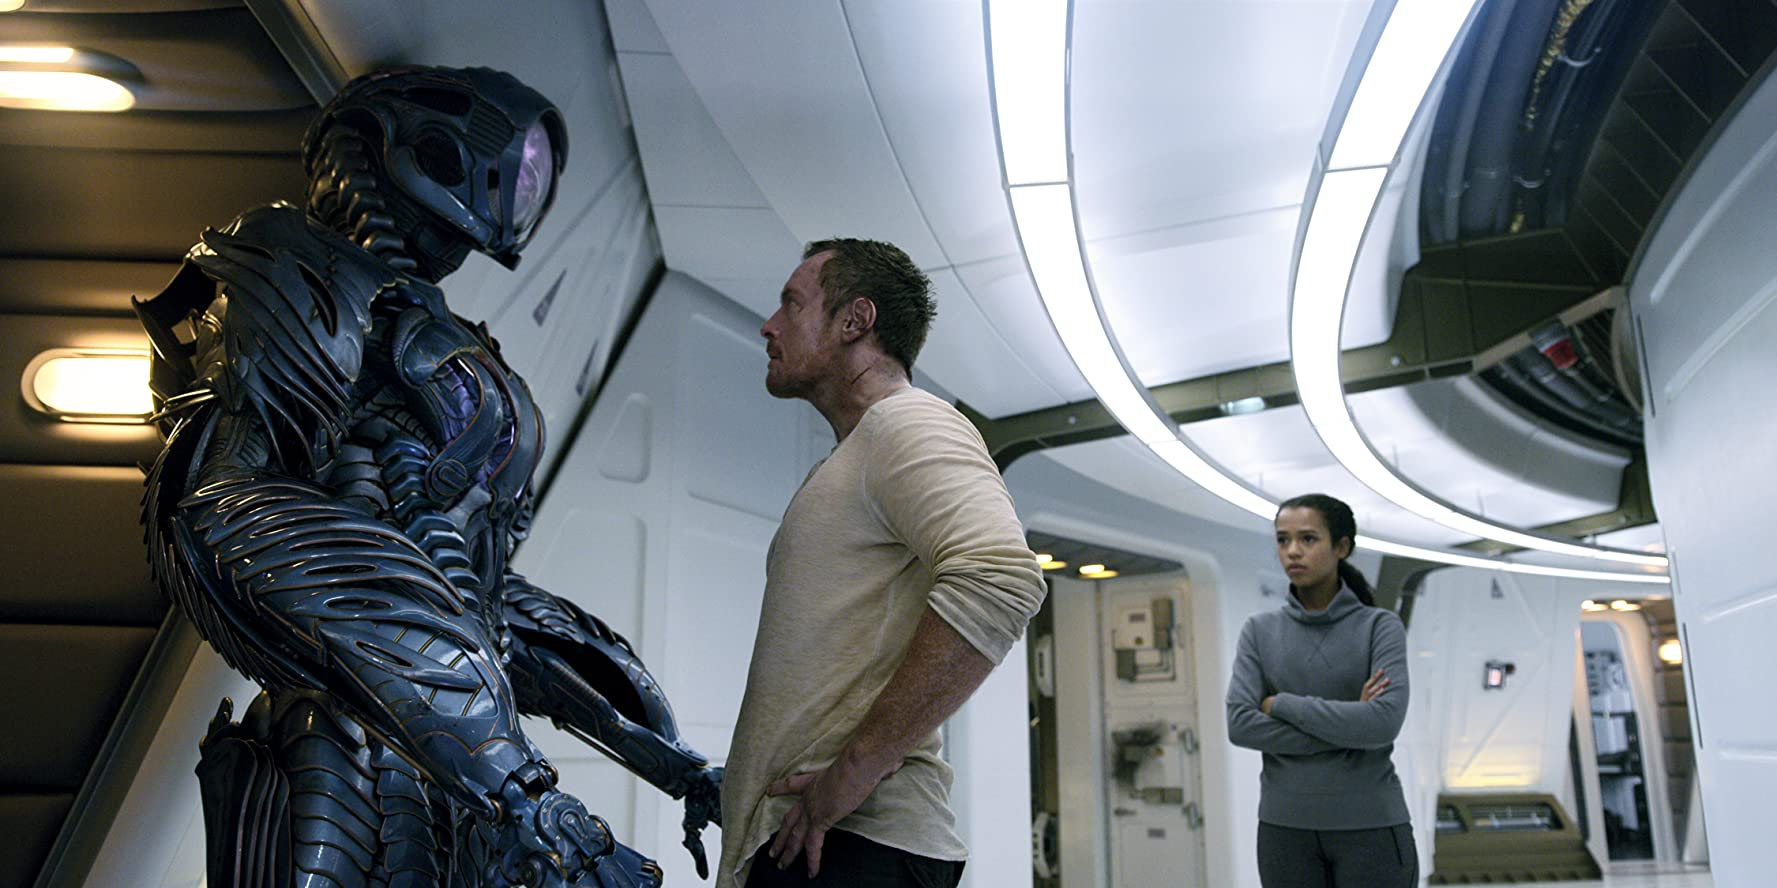 Brian Steele, Toby Stephens, and Taylor Russell in Lost in Space (2018)